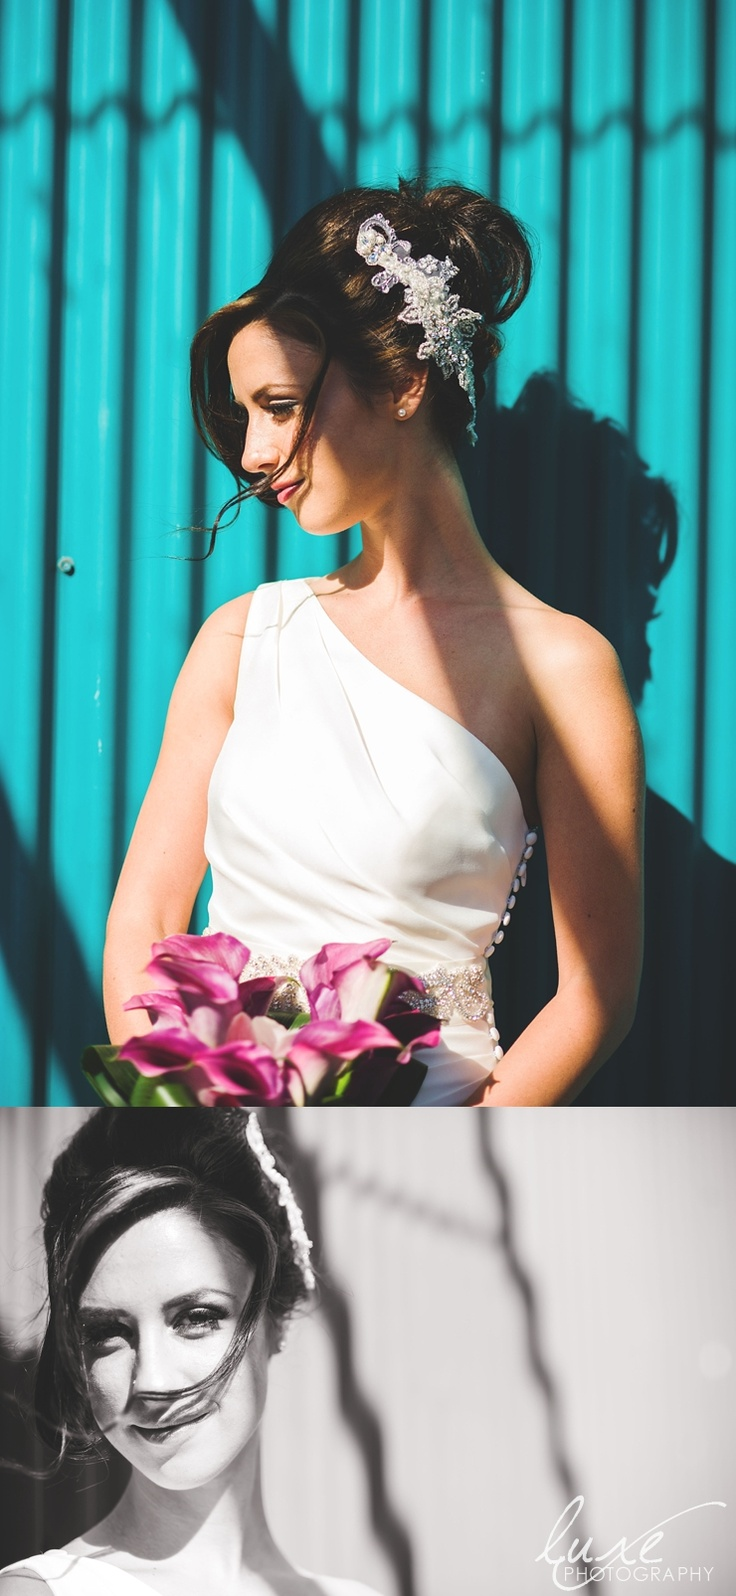 Bridal shots at Granville Island in Vancouver BC. Luxe Photography by Larissa Addison